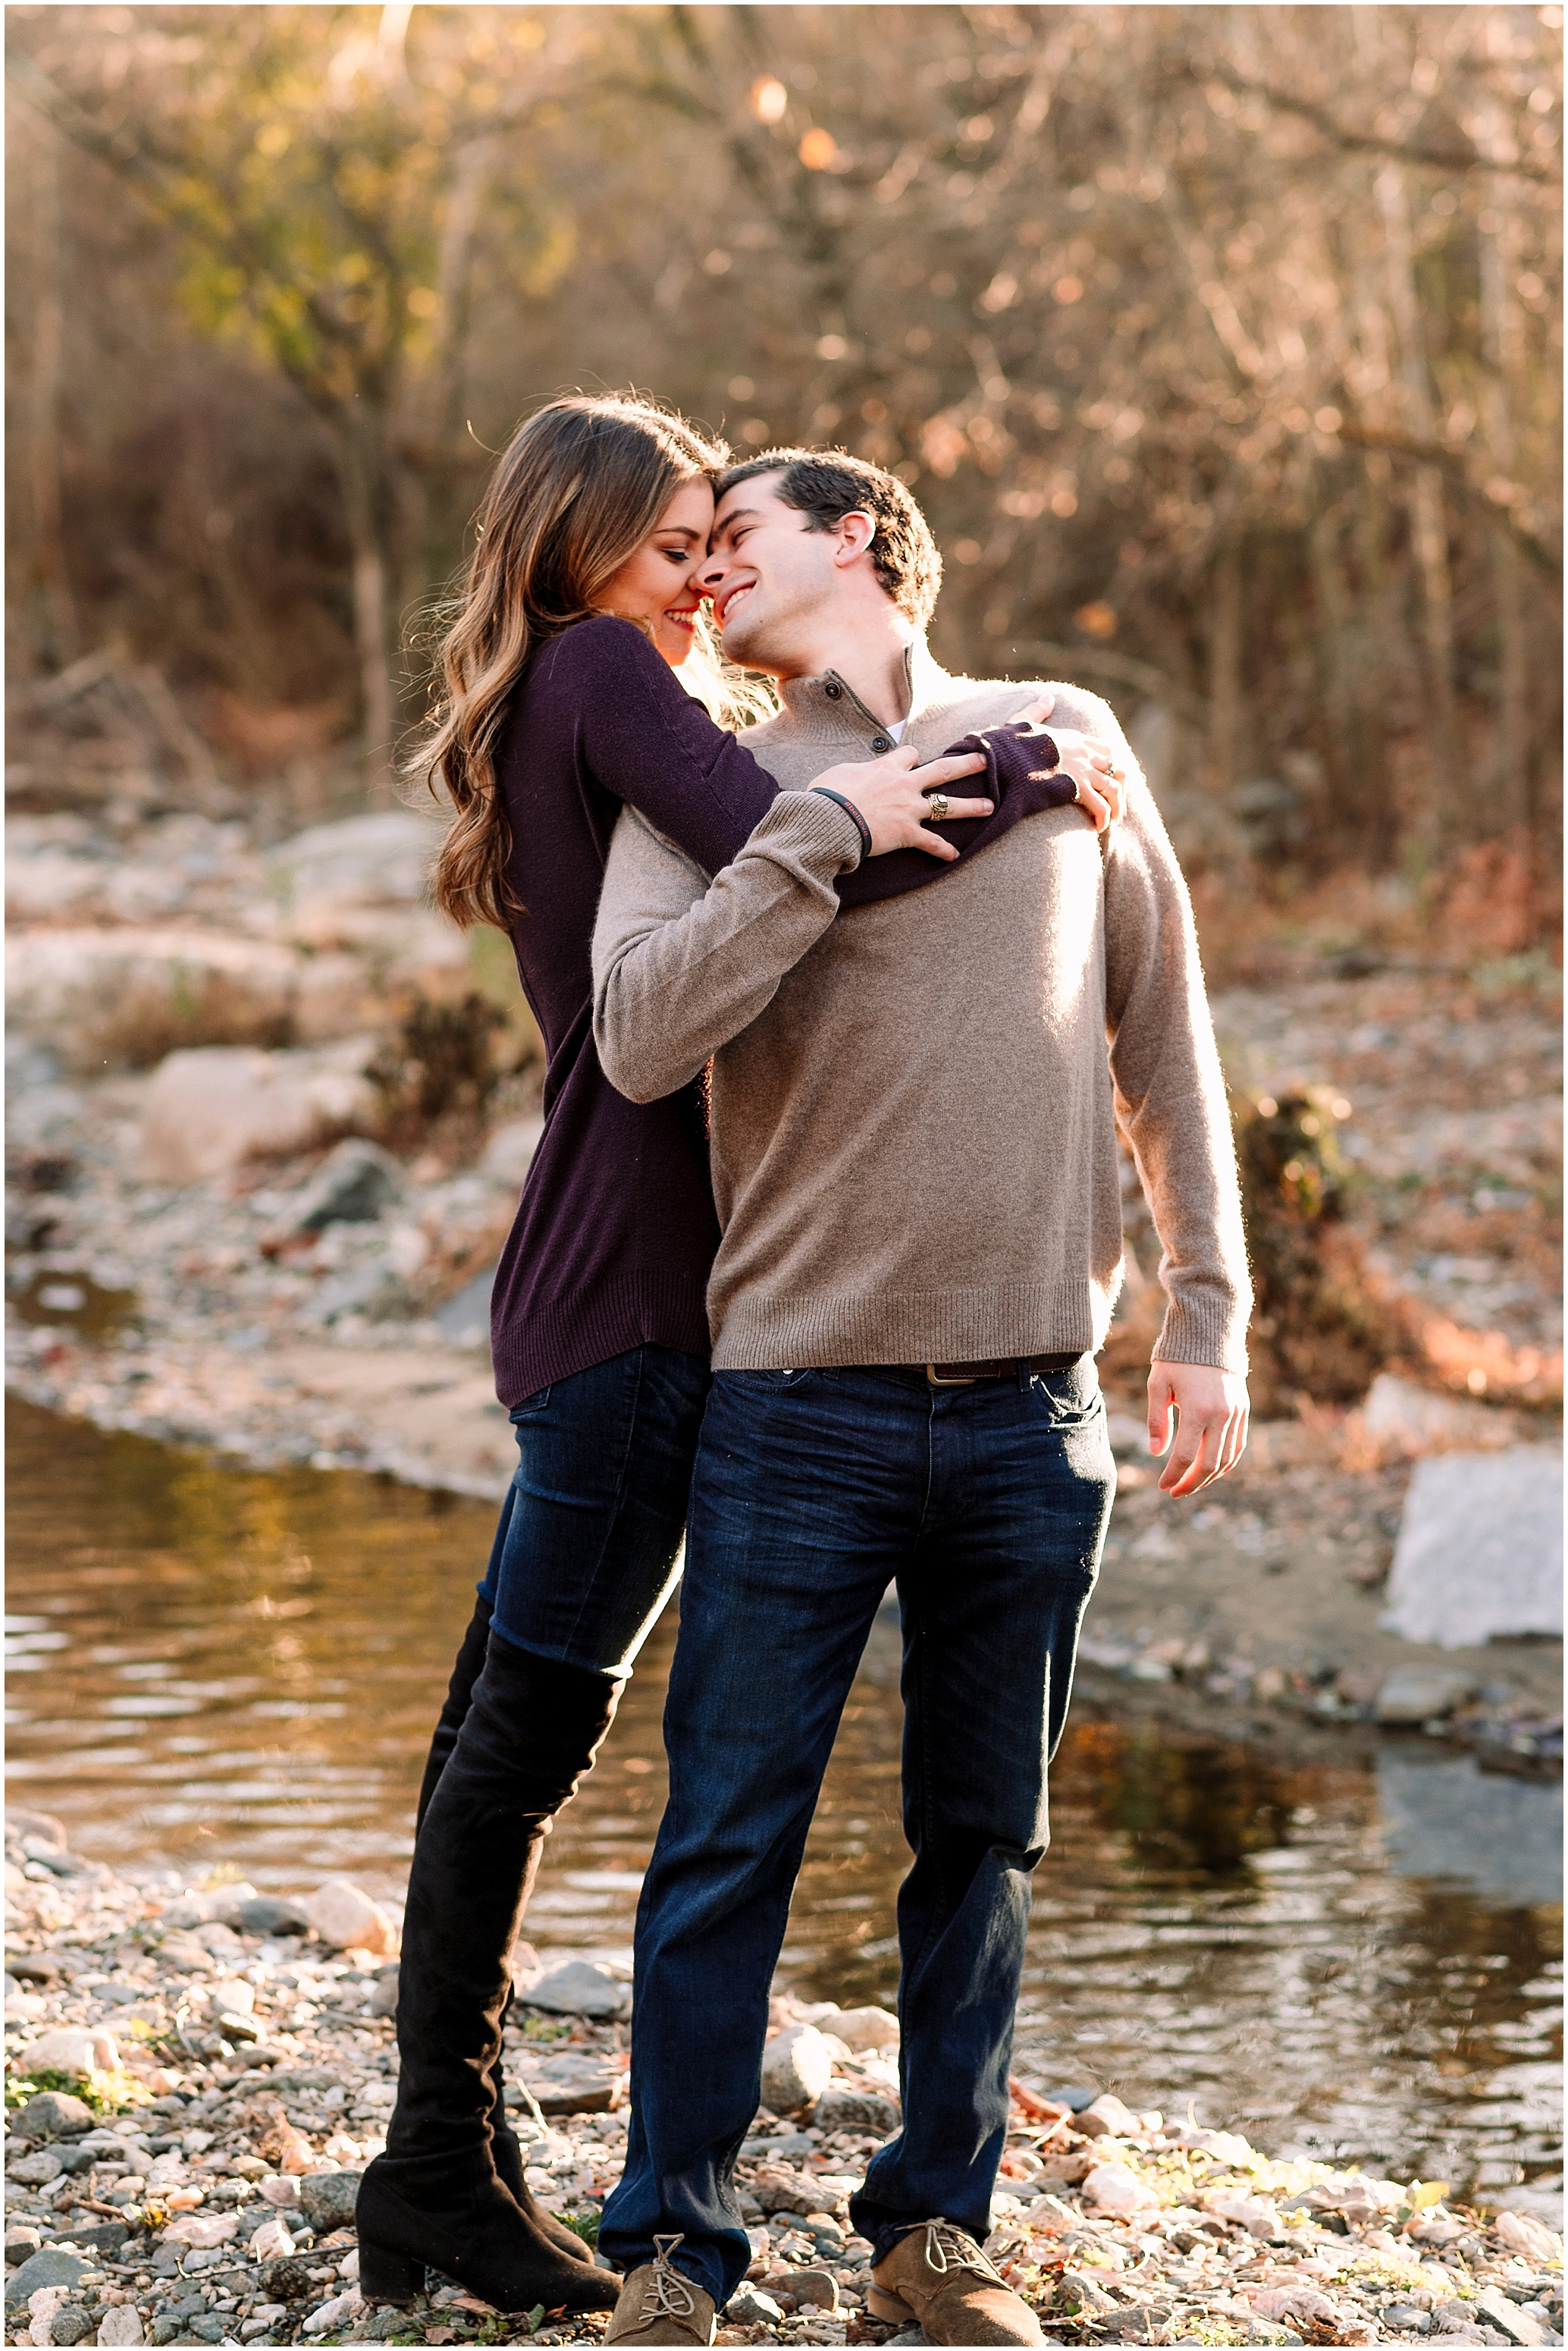 Hannah Leigh Photography Ellicott City MD Engagement Session_6935.jpg